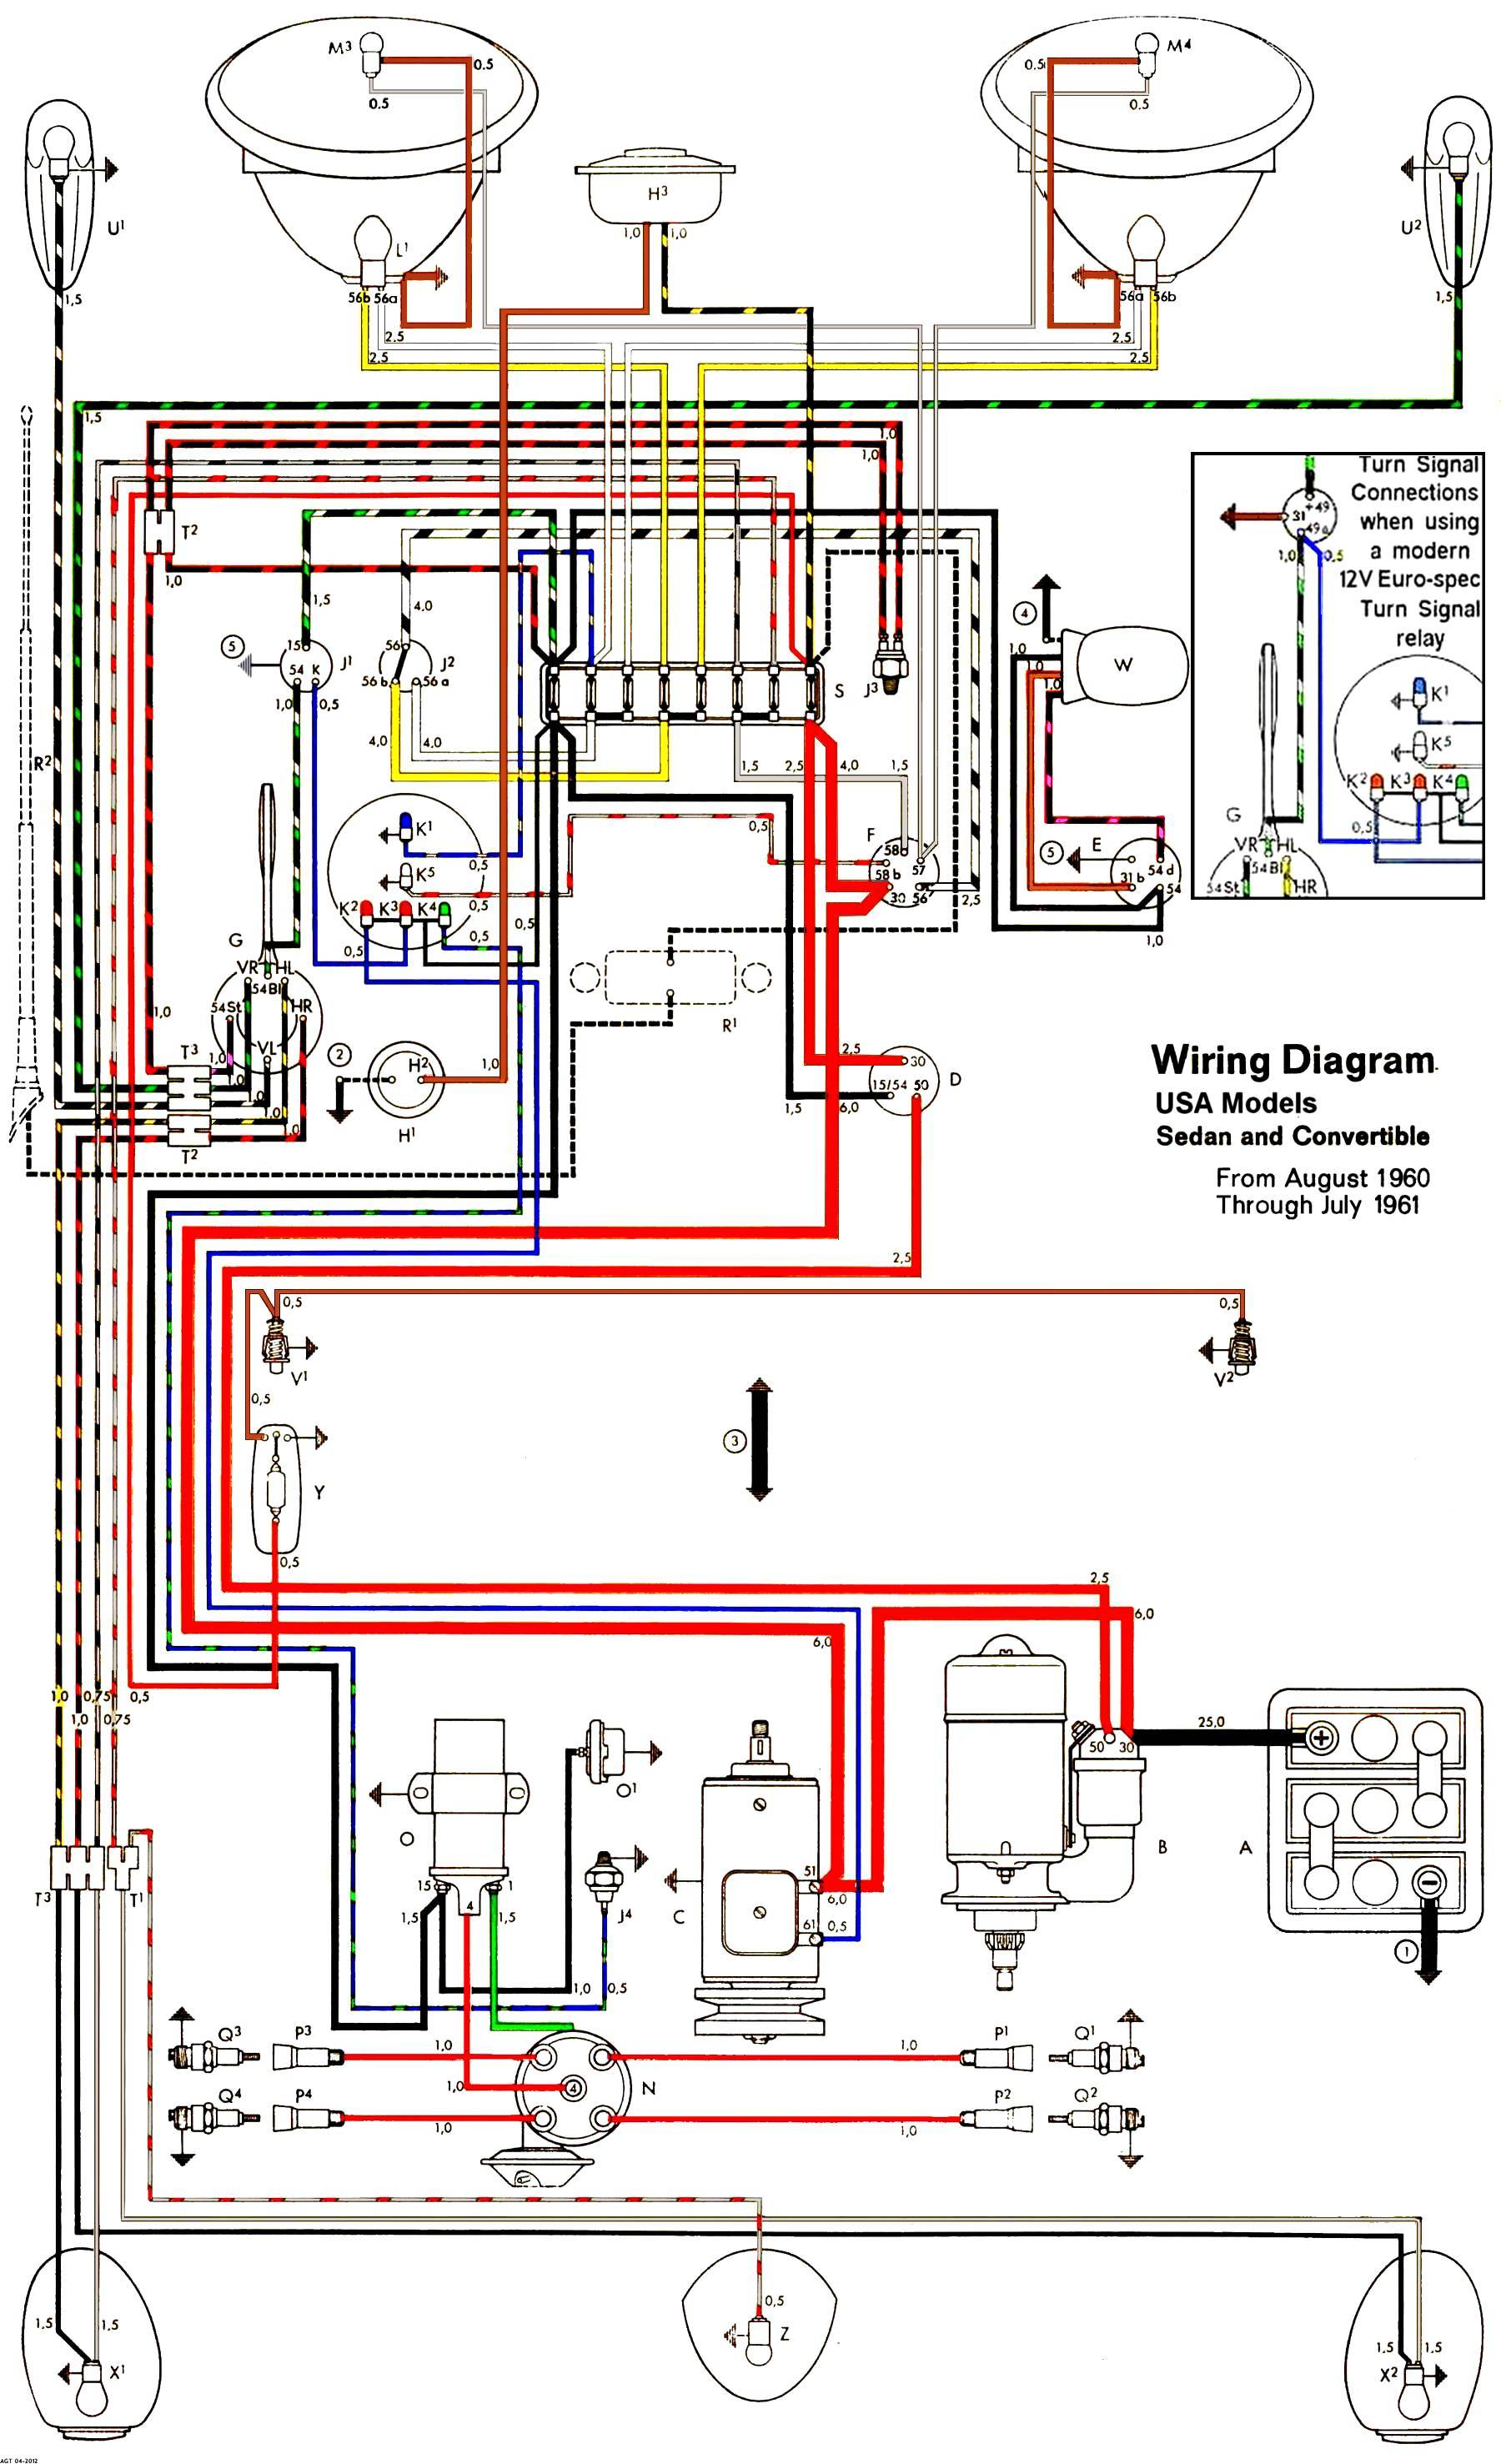 1970 Vw Beetle Turn Signal Wiring Diagram Free For Karmann Ghia Detailed Rh 20 1 4 Gastspiel Gerhartz De Switch